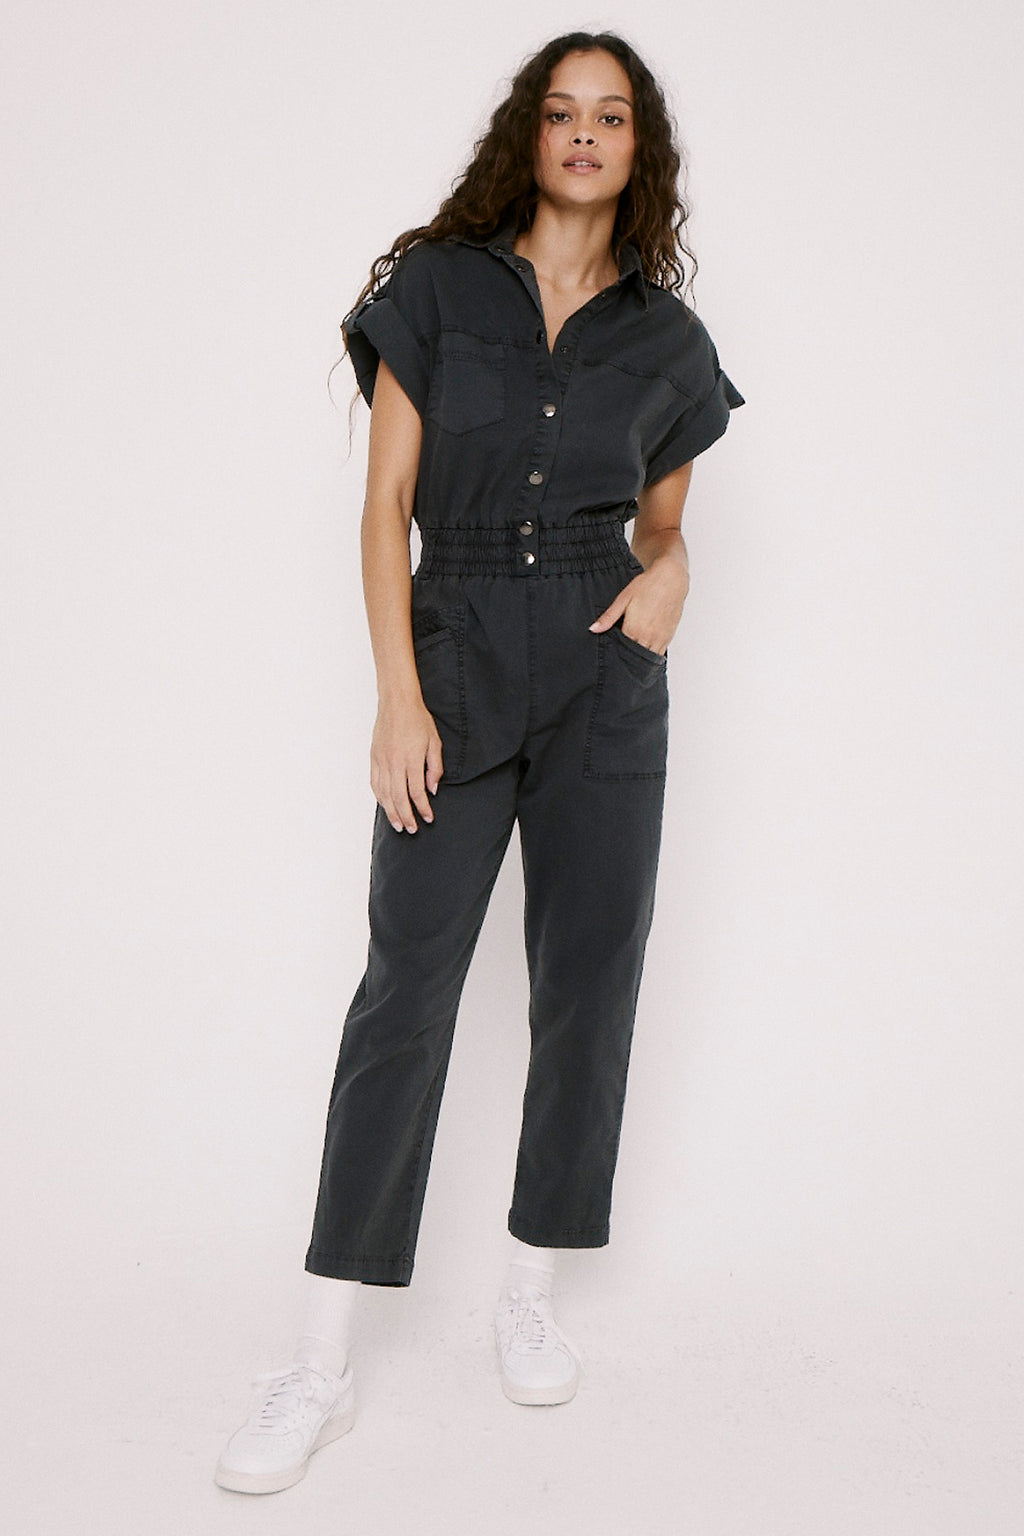 Dani Lightweight Dolman Pull On Jumpsuit - Asphalt